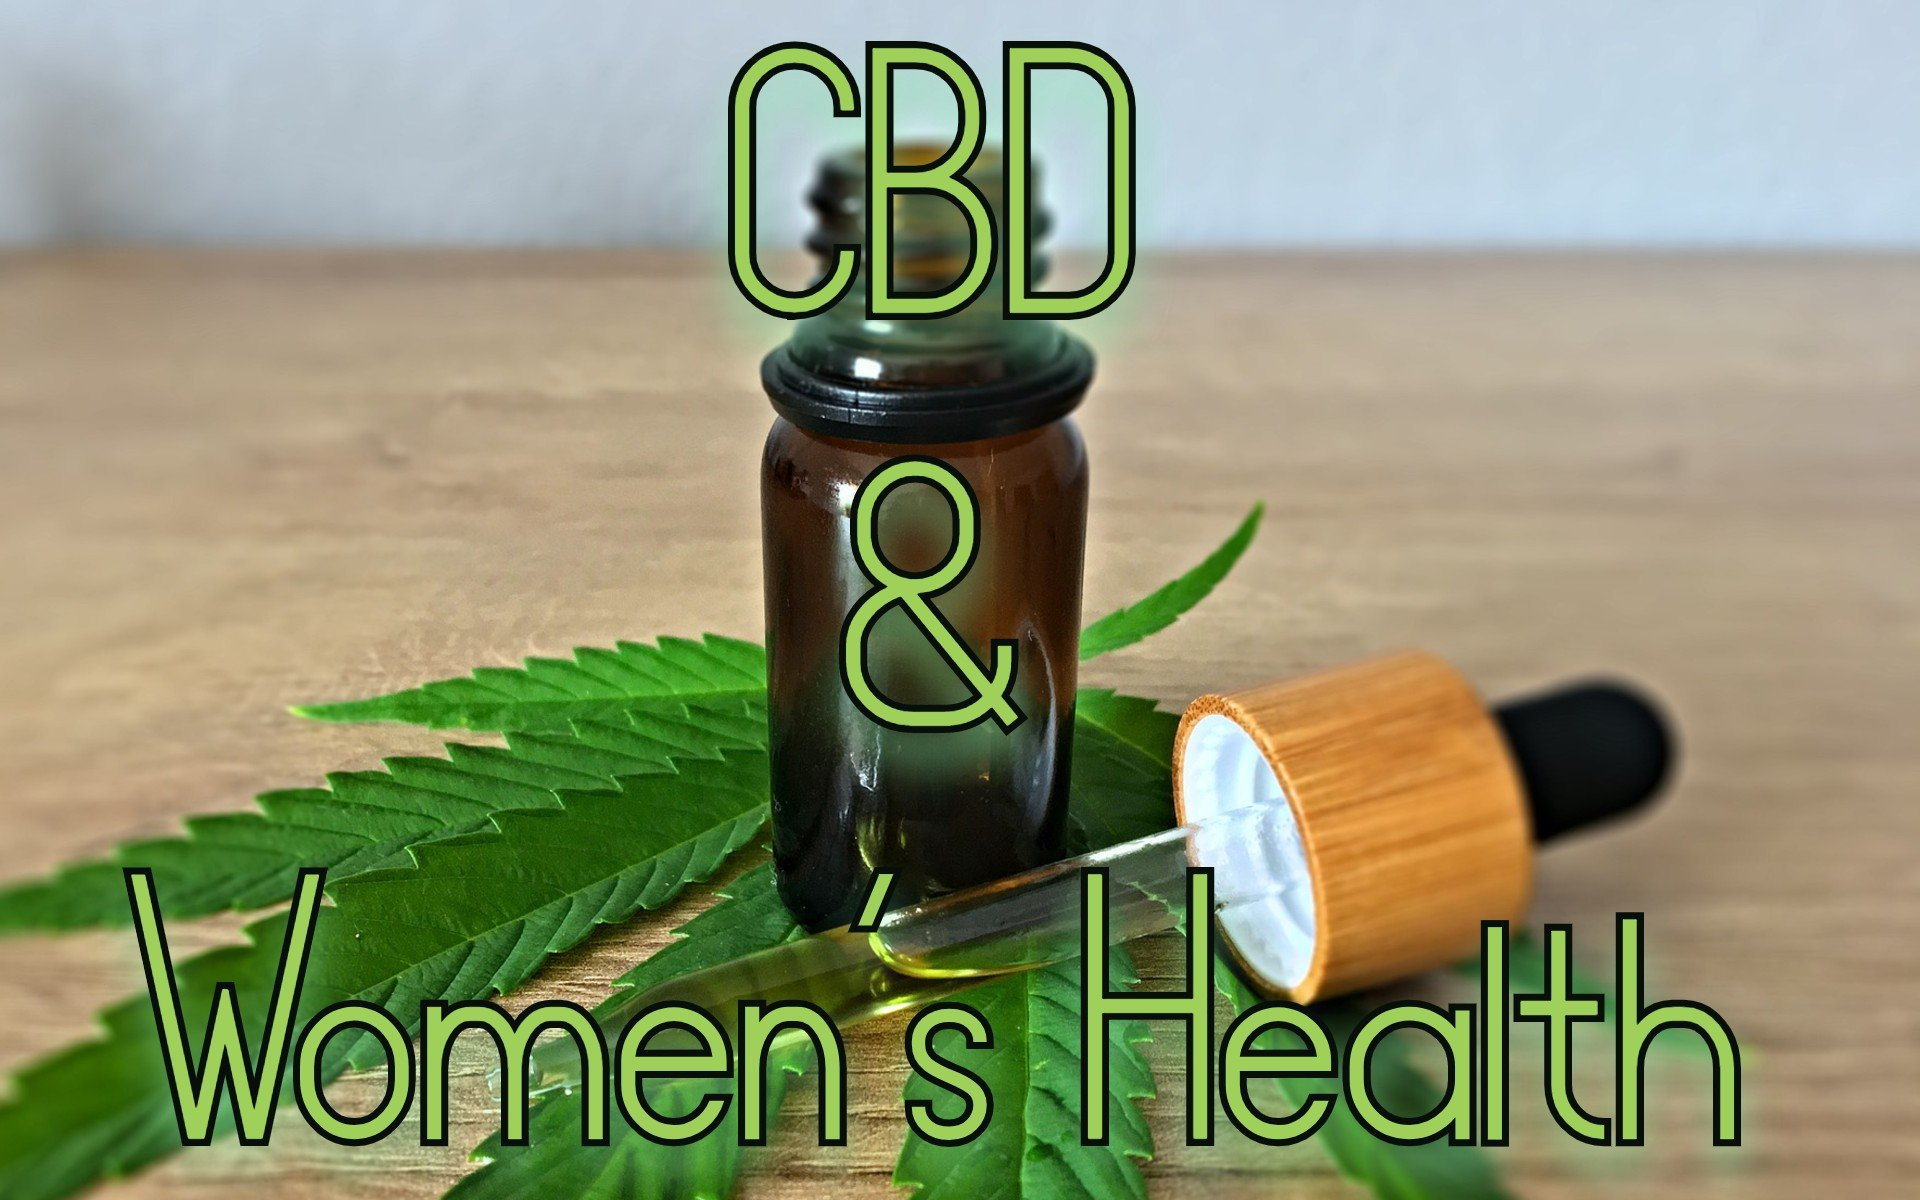 Lord Vaper Pens CBD & Women's Health blog article